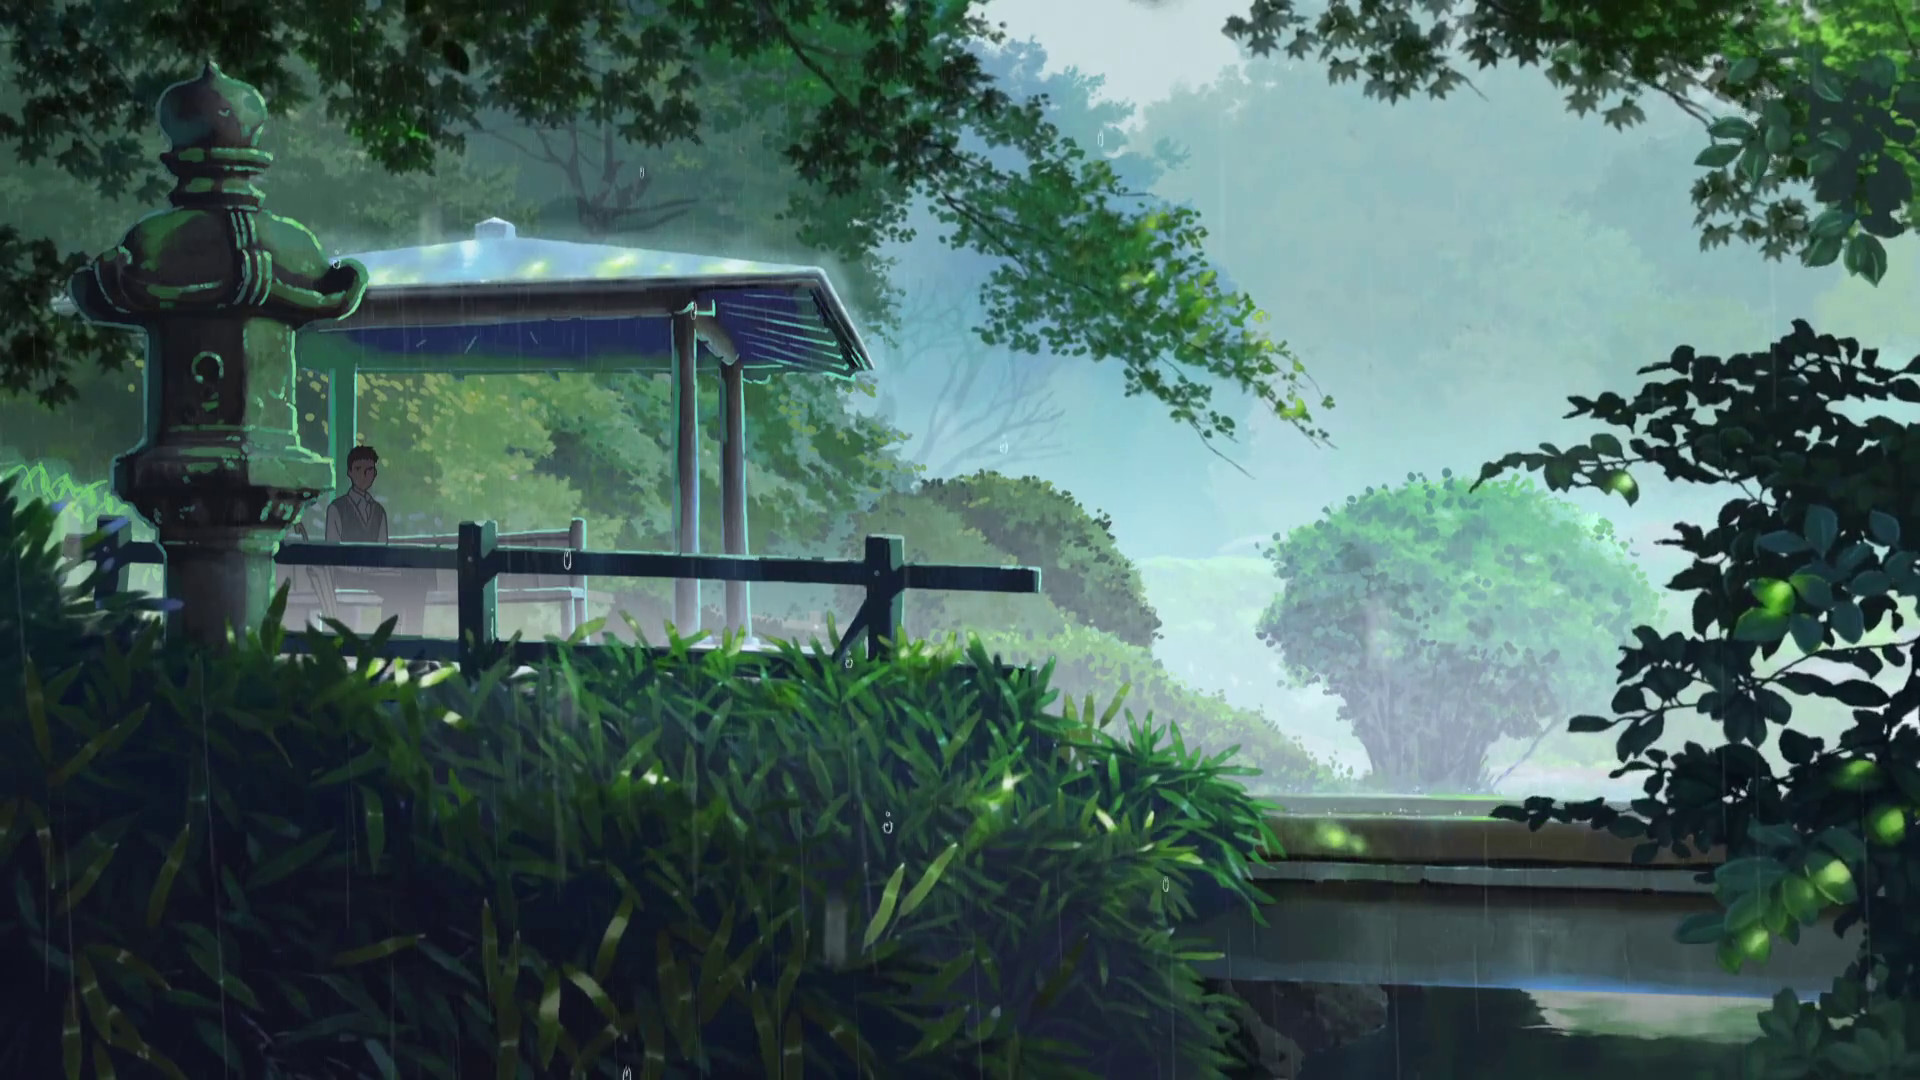 519 best raw scenery images on Pinterest | Anime scenery, Concept art and  Anime art